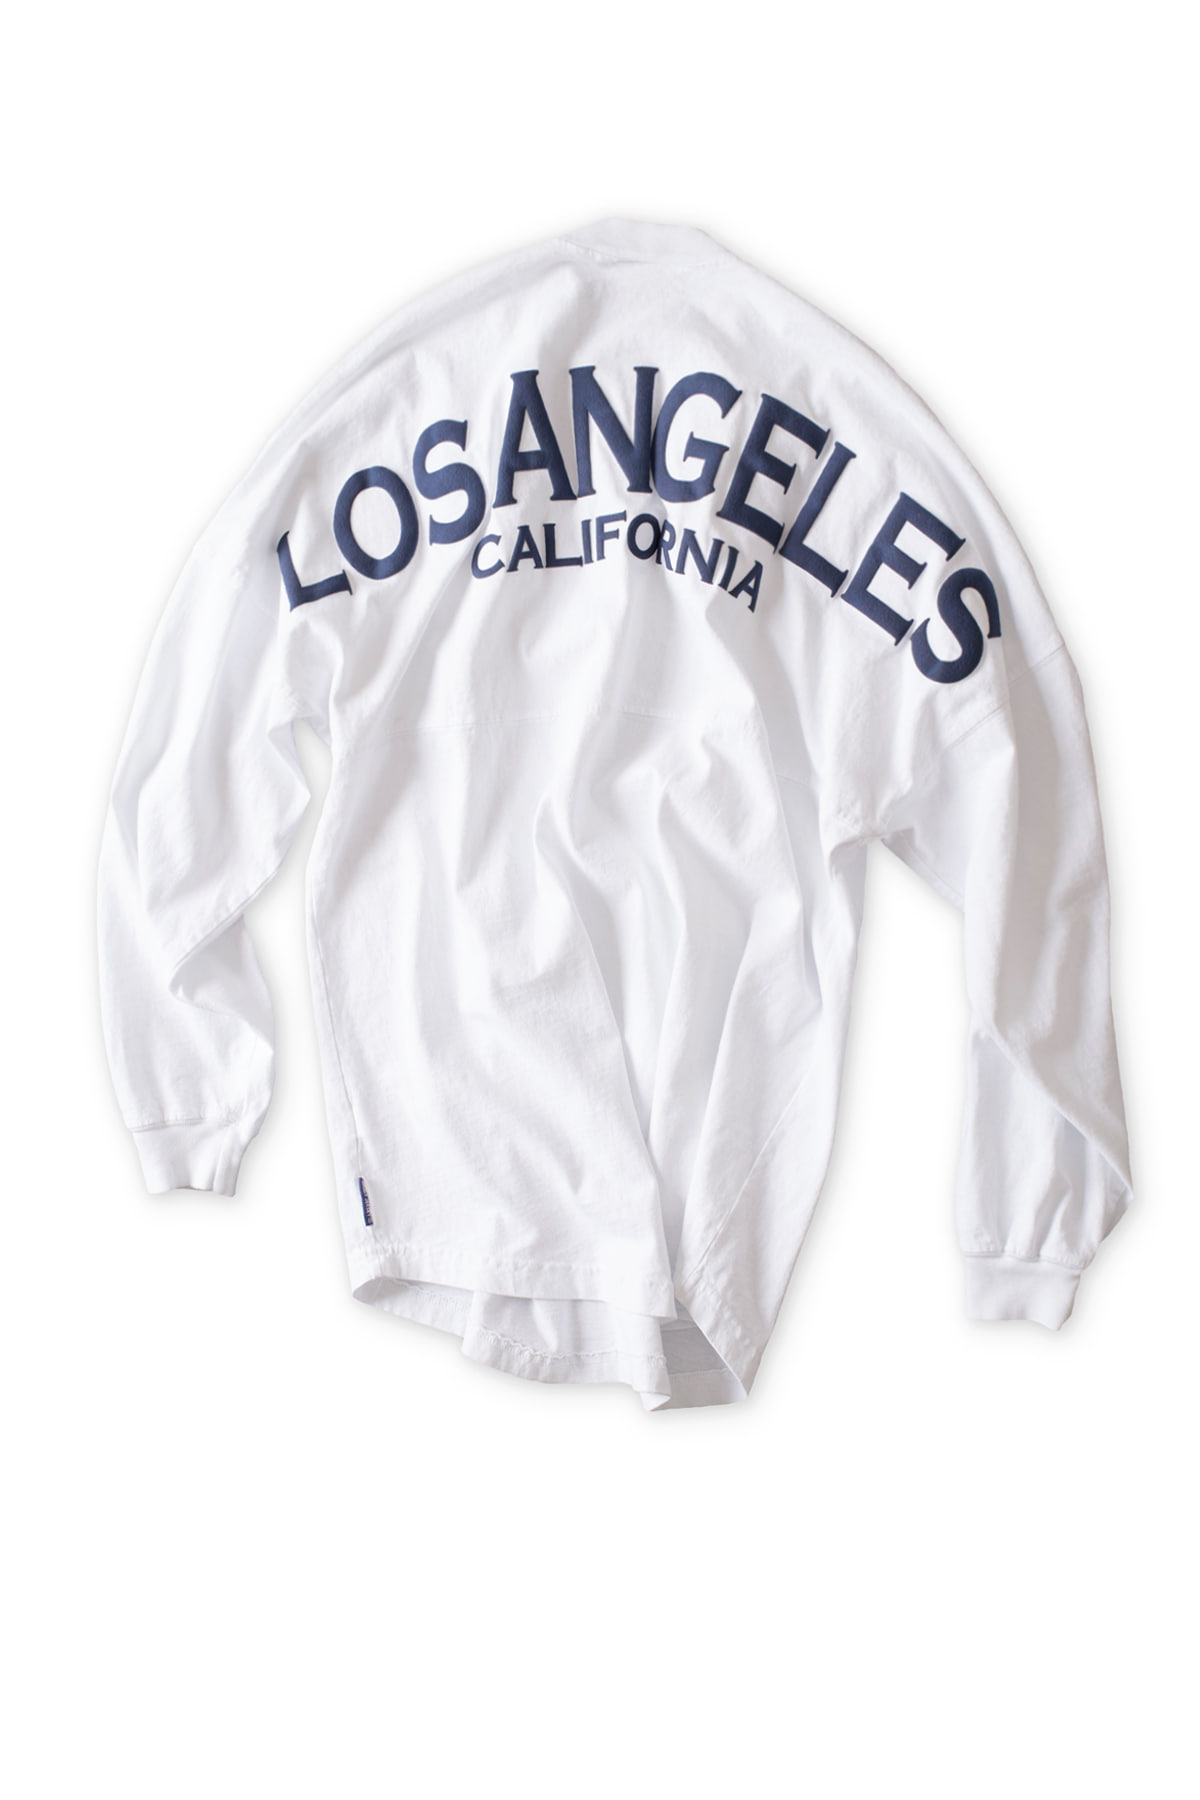 Spirit Jersey : Los Angeles L/S Tee (White)